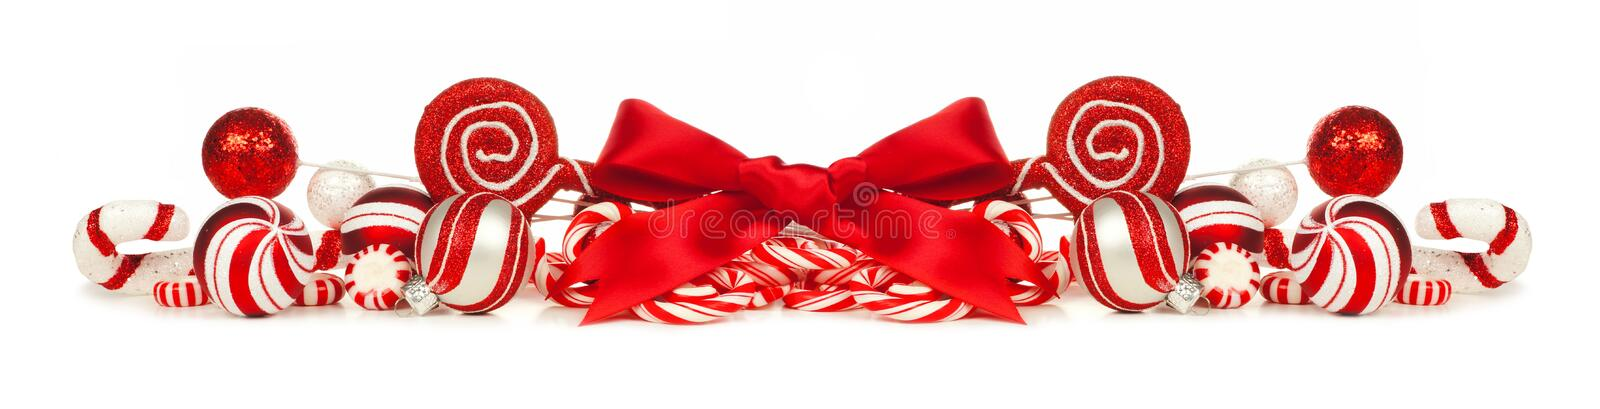 Red and white Christmas baubles, bows and candy cane border. Christmas border of red and white baubles, bows and candy canes isolated on a white background